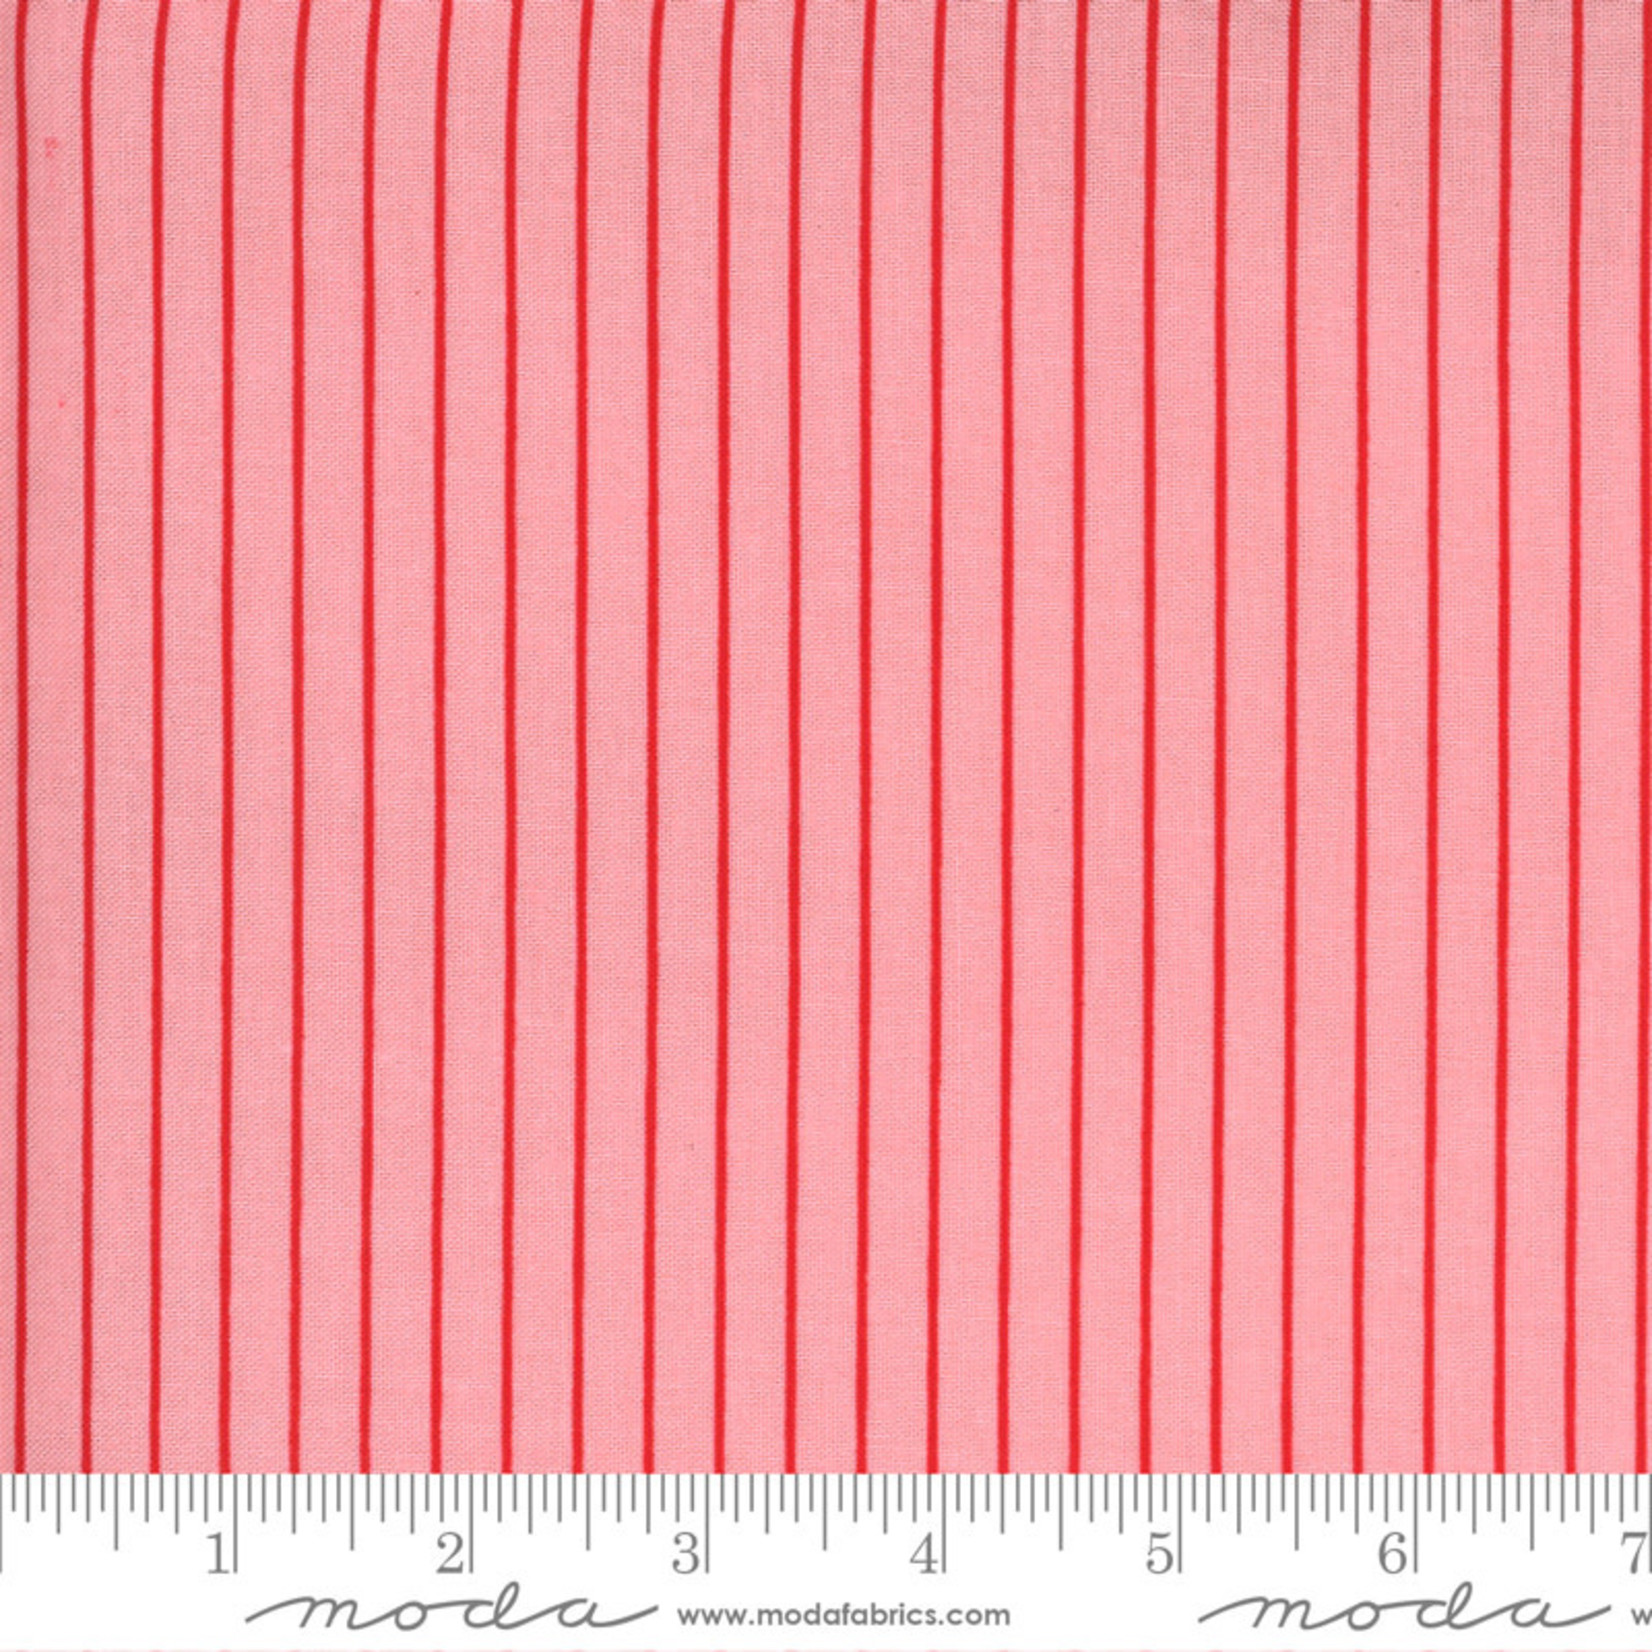 Bonnie & Camille Sunday Stroll, Wide Stripe, Pink 55228 13 $0.20 per cm or $20/m